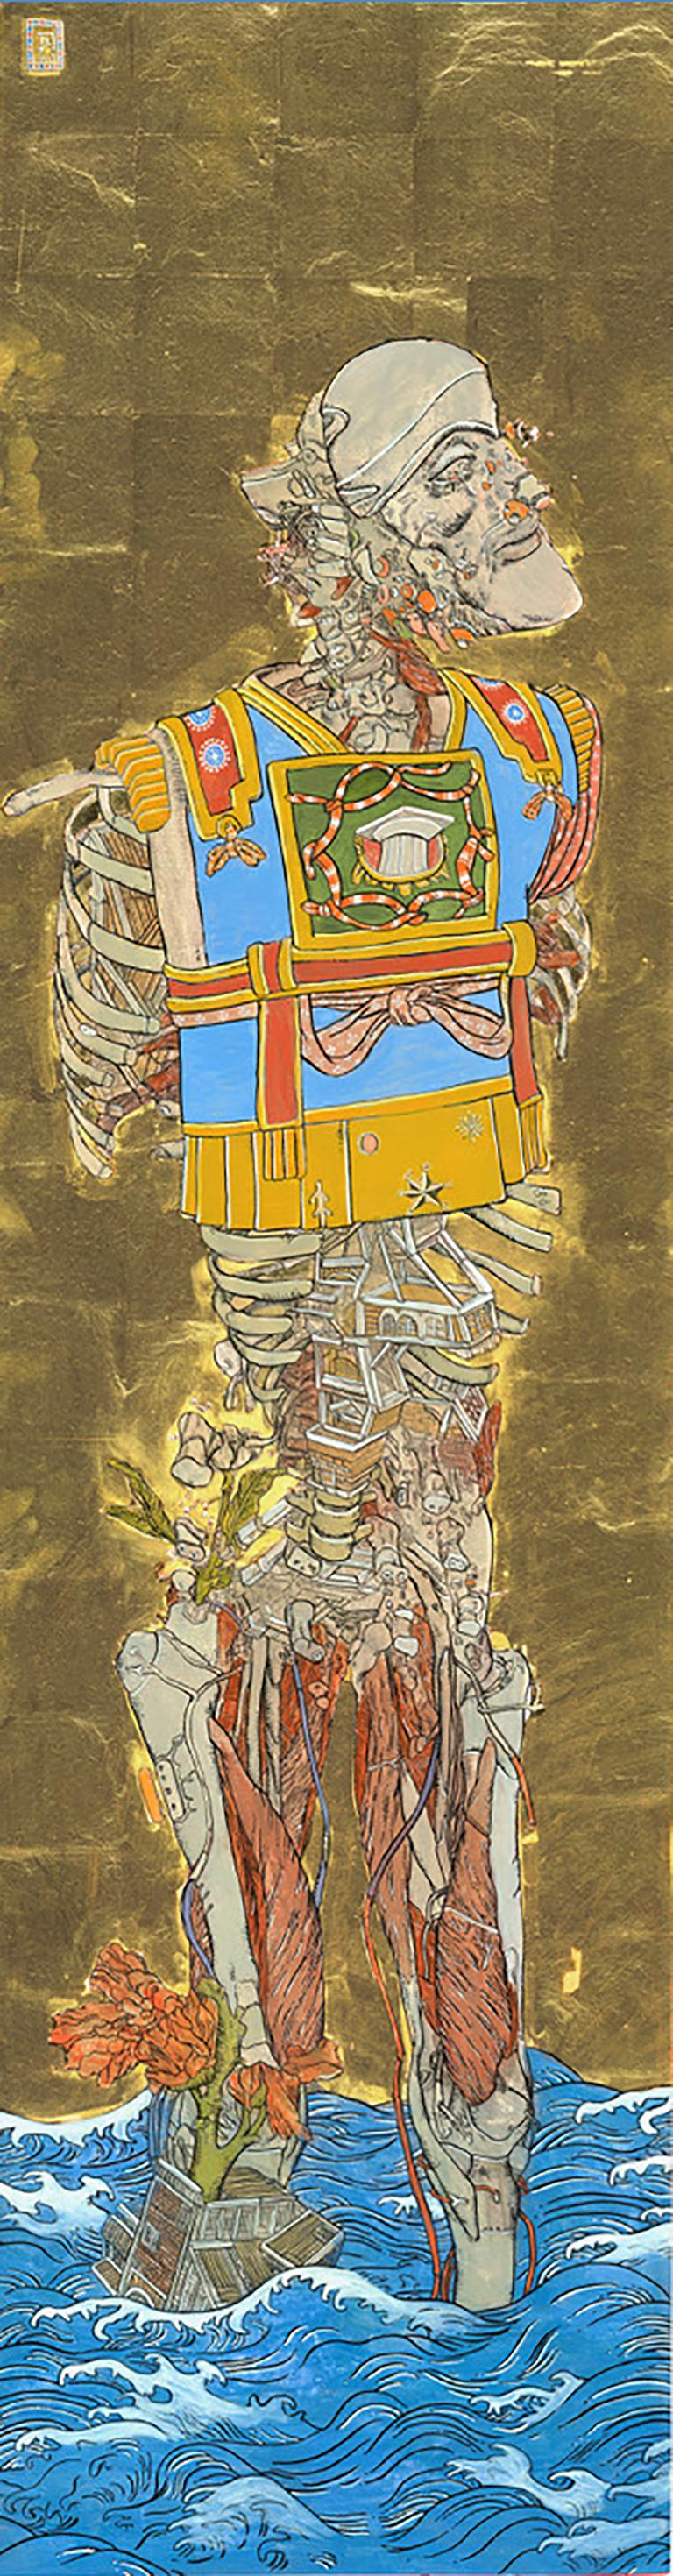 The Three Emperors, Futuristic painting triptych as a Byōbu-ē folding screen - Painting by Konstantinos Papamichalopoulos